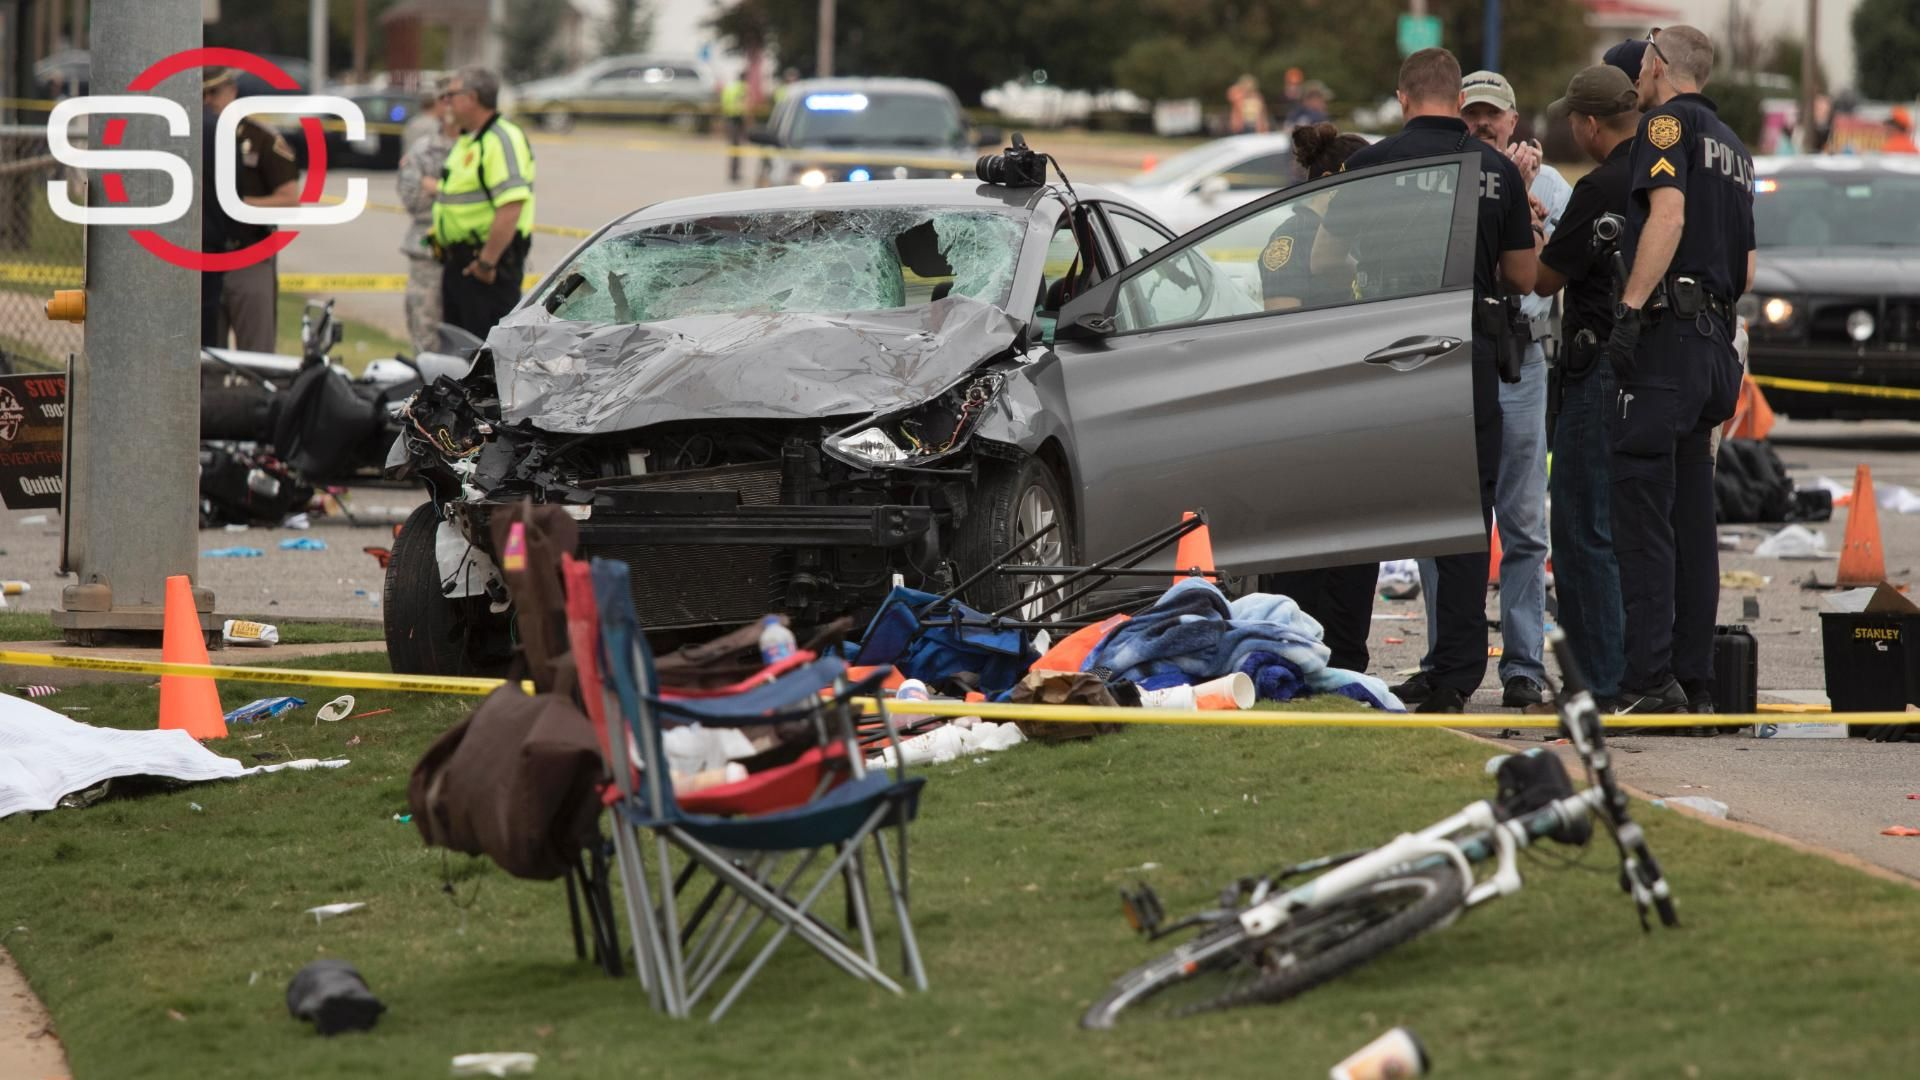 Four people dead after crash at Oklahoma State parade